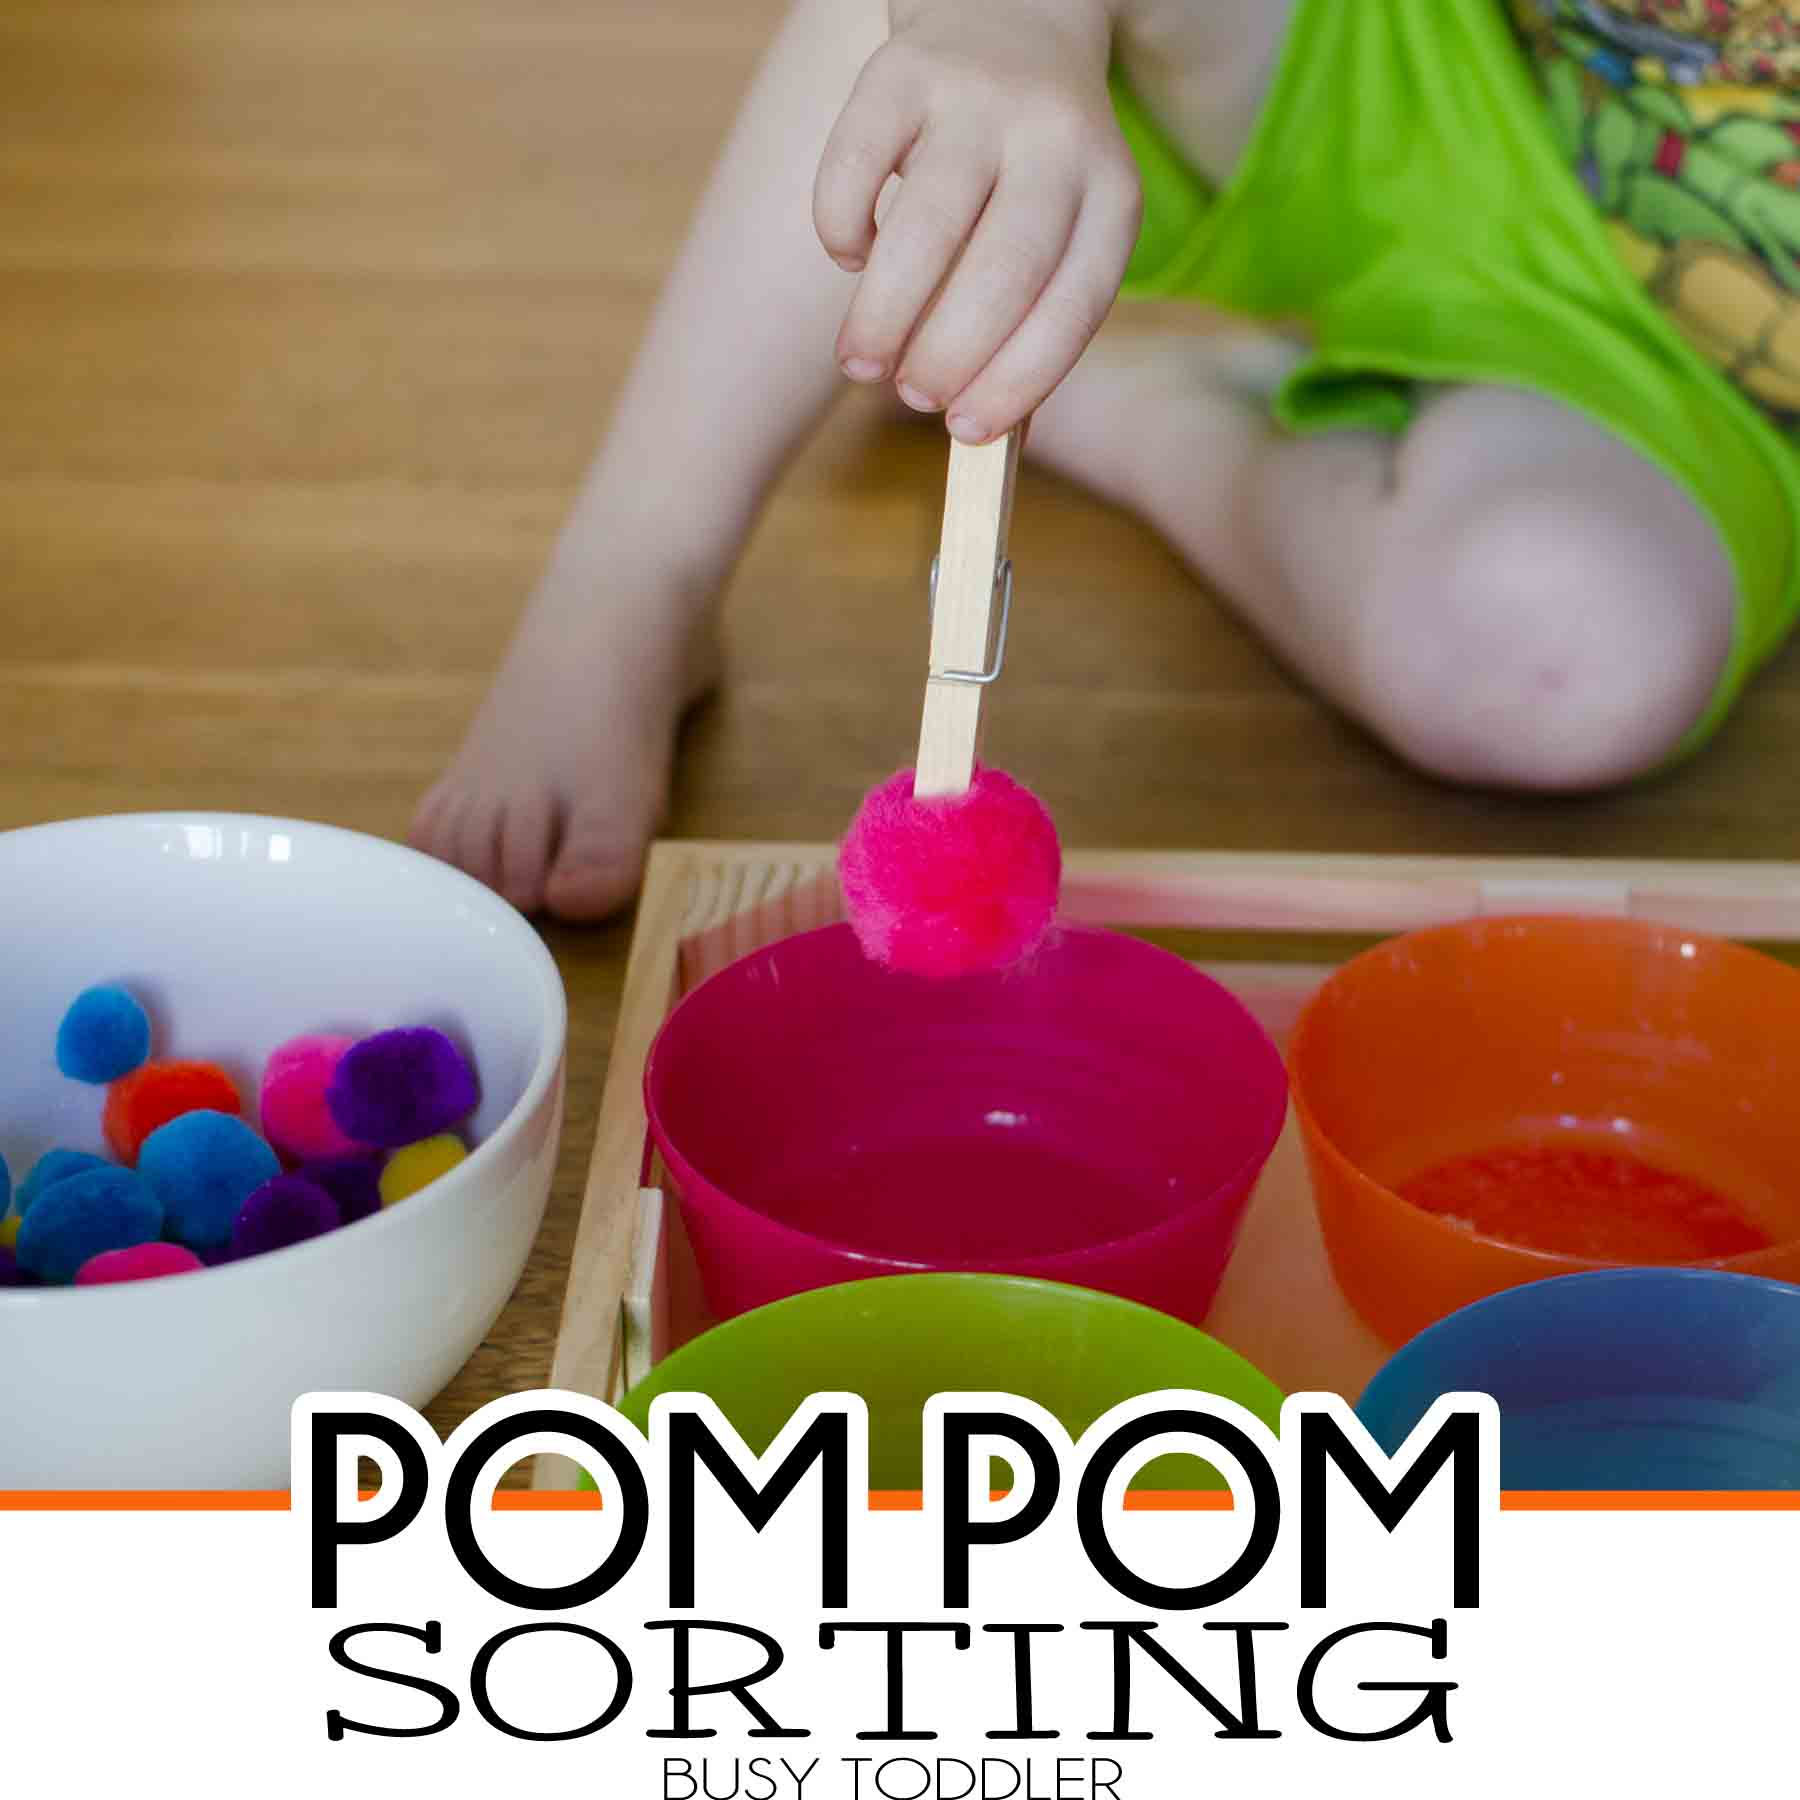 Pom pom sorting a simple toddler activity fine motor skills for toddlers and preschoolers